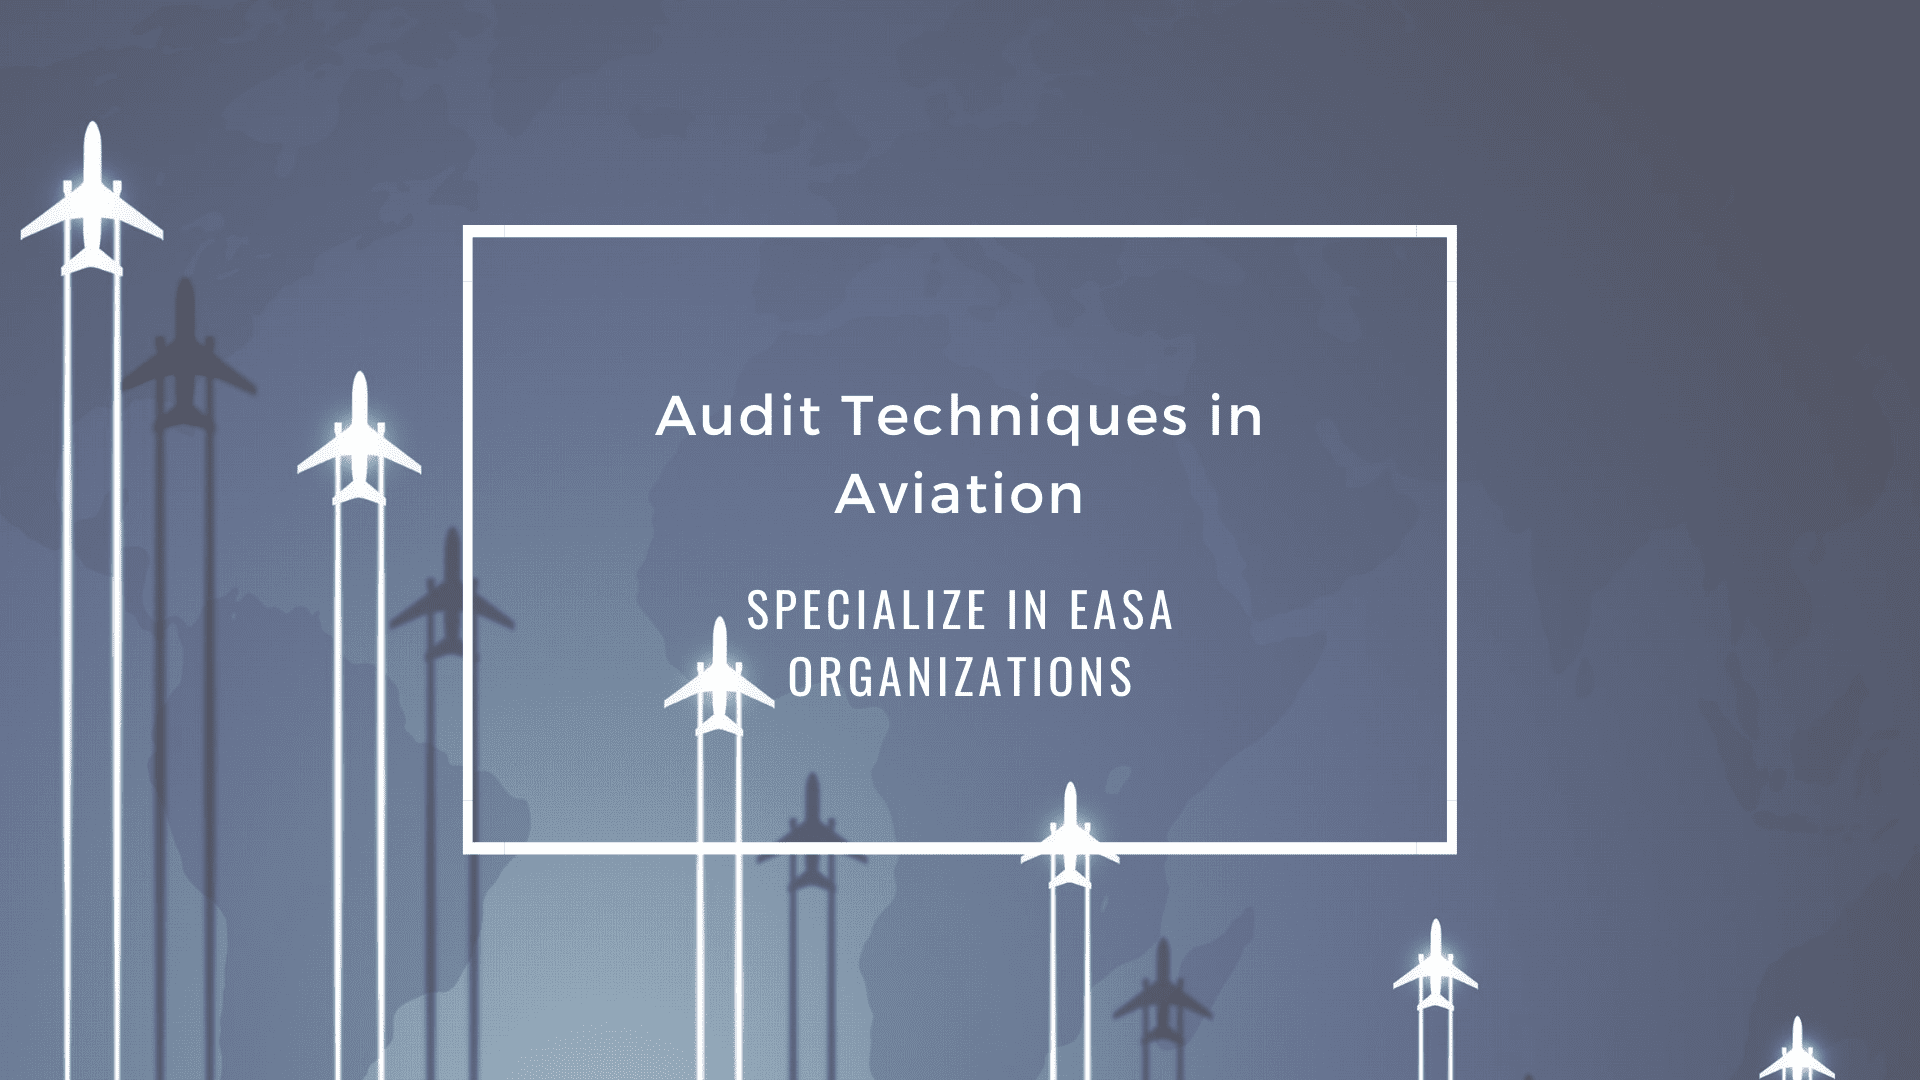 Audit Techniques in Aviation